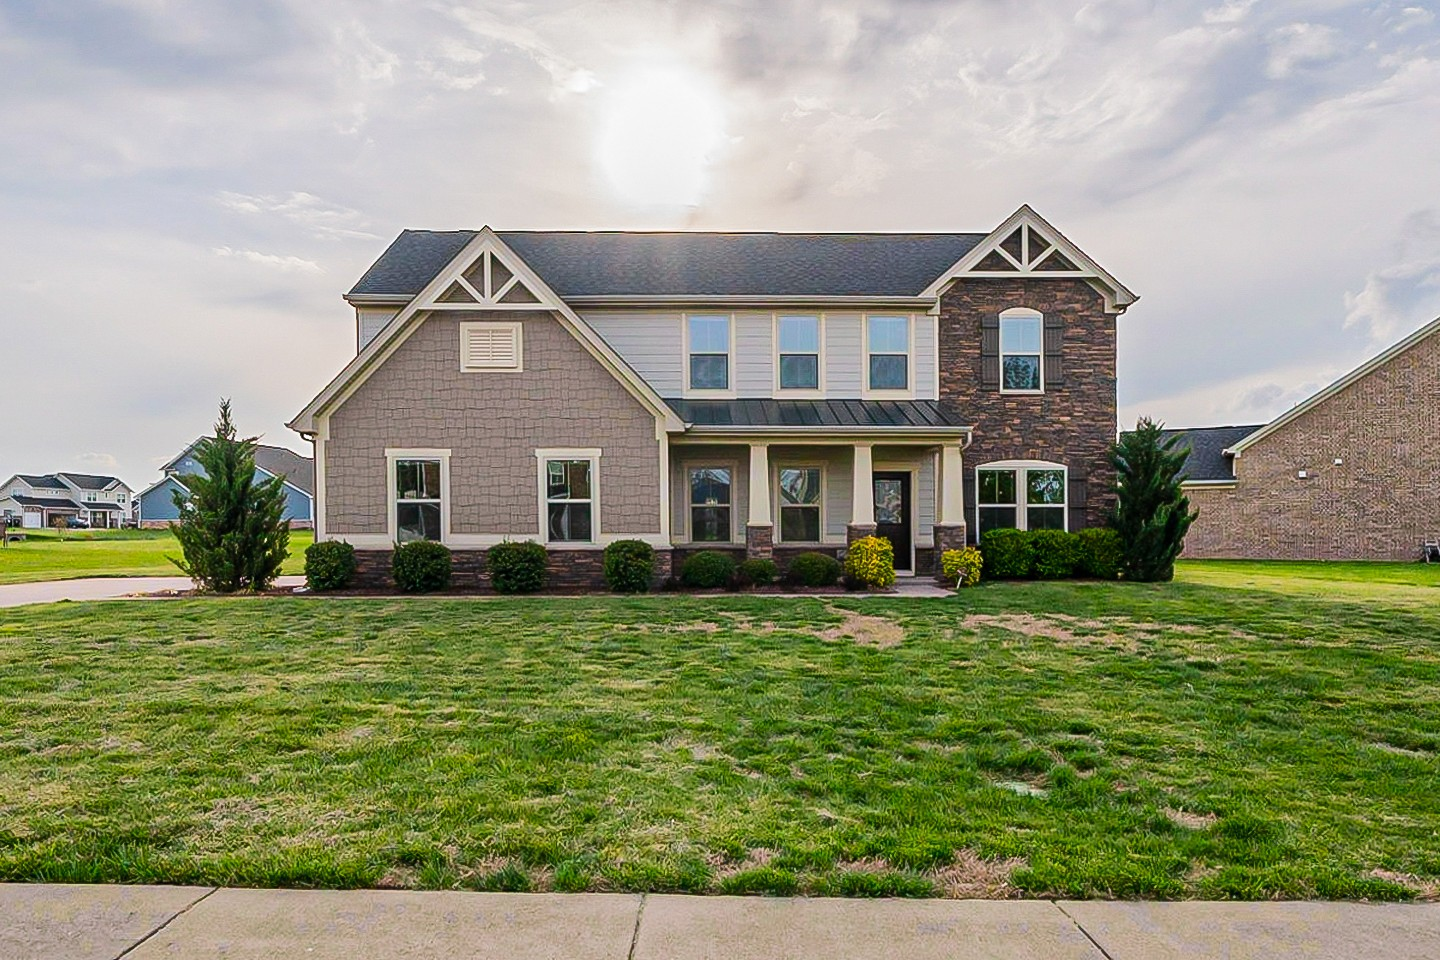 Built in 2014, this Murfreesboro one-story cul-de-sac home offers granite countertops, and a two-car garage.